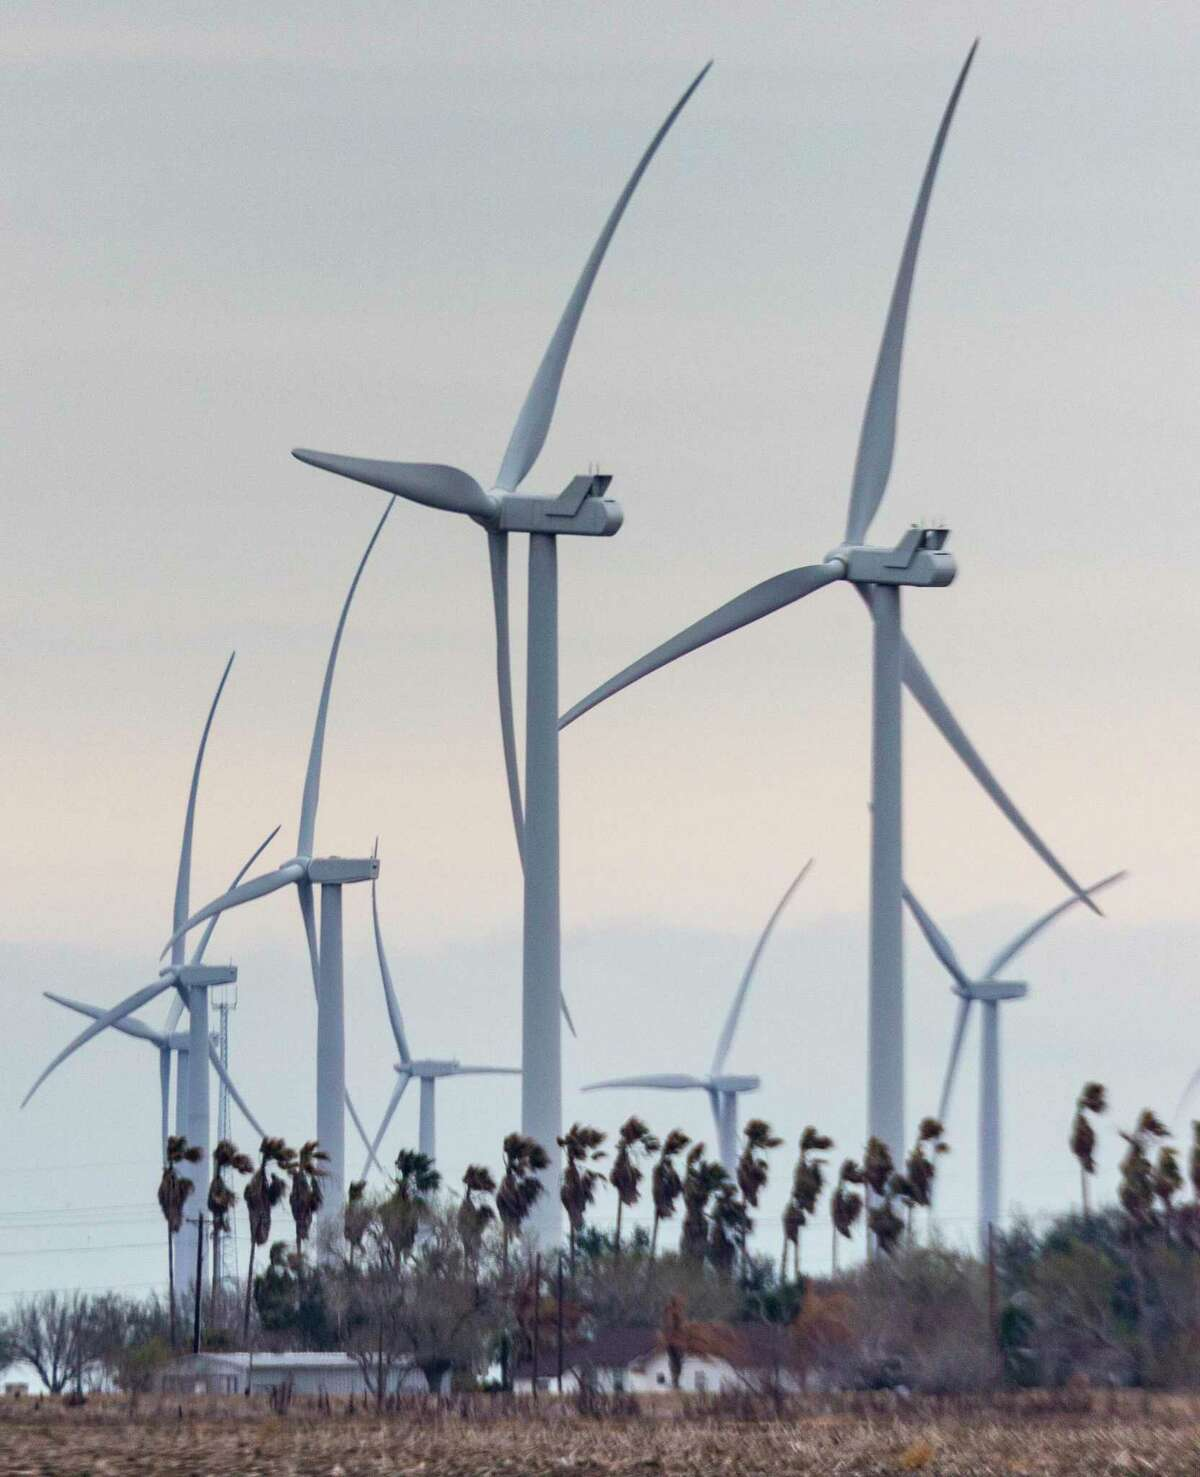 Wind turbines spin Tuesday, March 2, 2021 near Raymondville in the Rio Grande Valley in far south Texas.